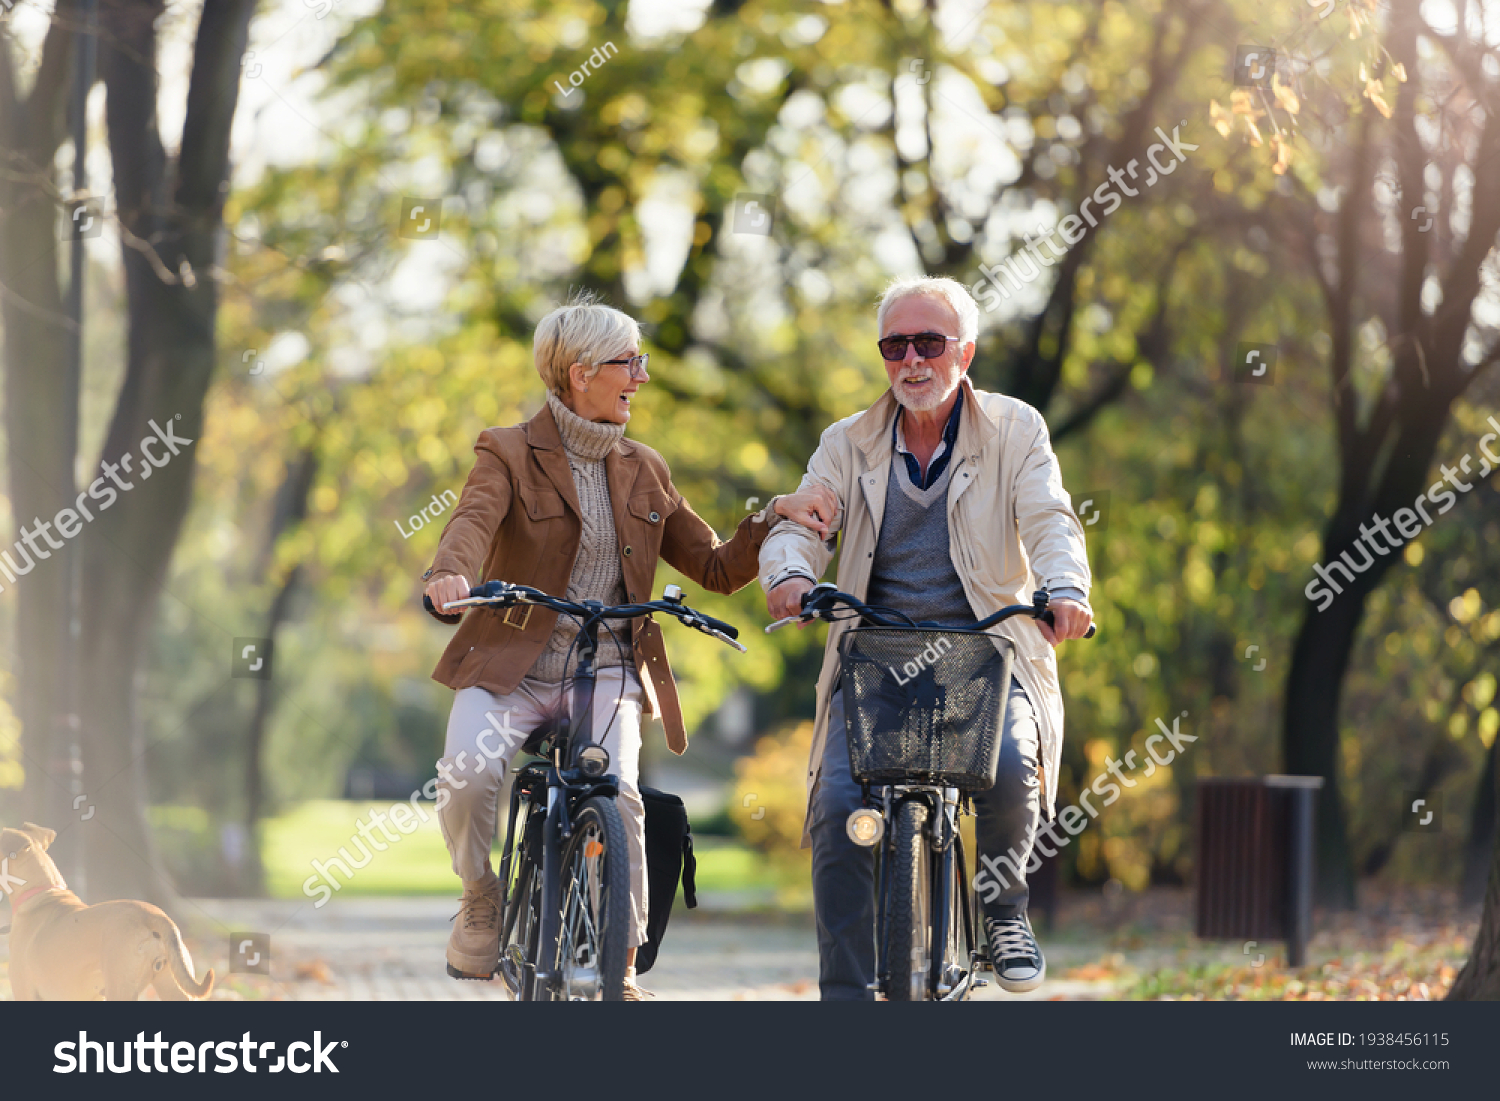 Cheerful active senior couple with bicycle in public park together having fun. Perfect activities for elderly people. Happy mature couple riding bicycles in park #1938456115